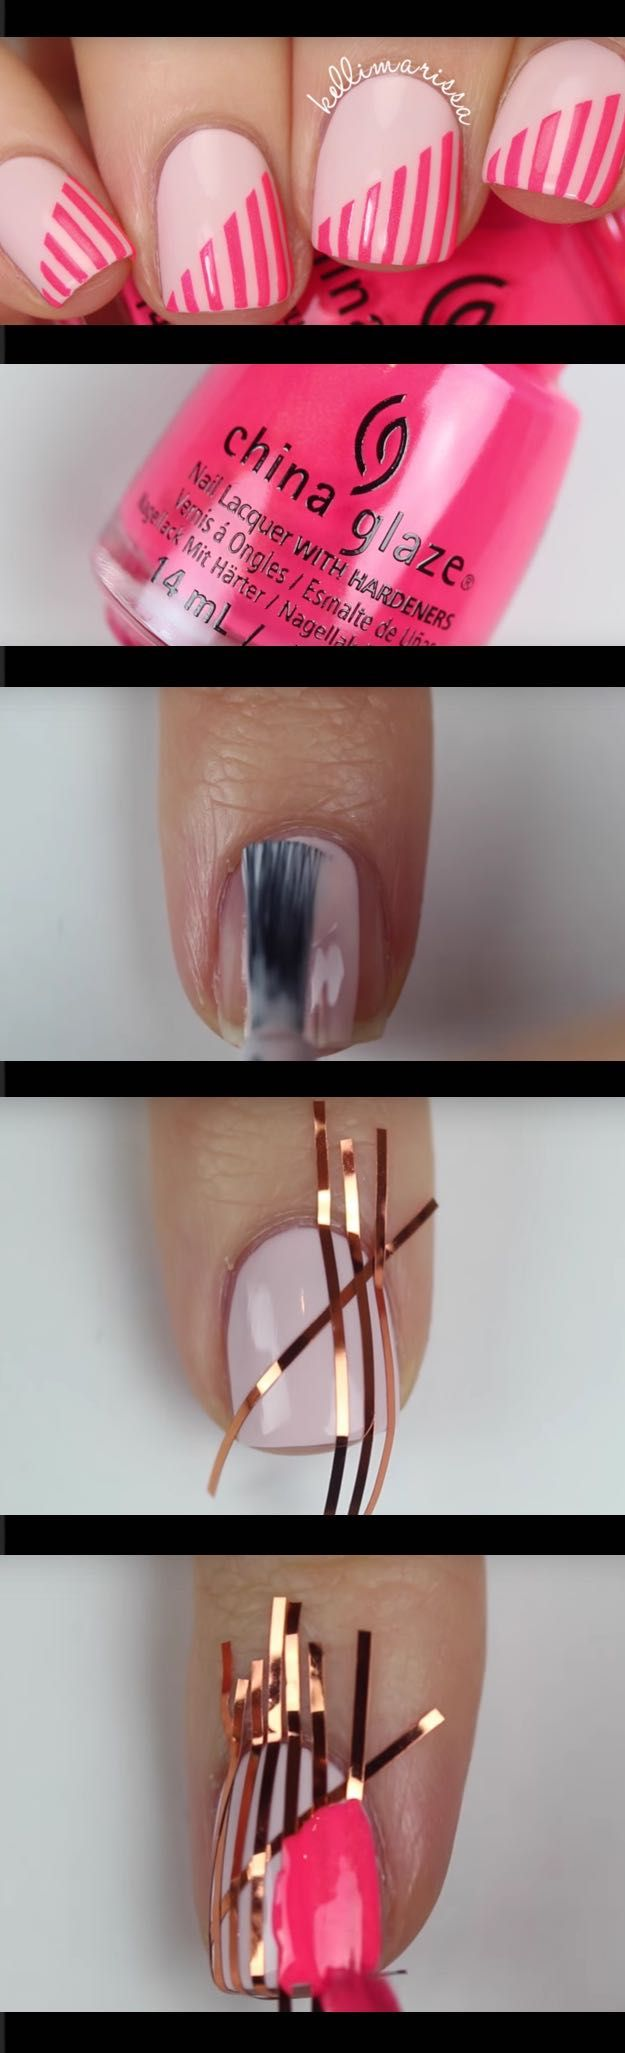 Super Easy Nail Art Ideas For Beginners